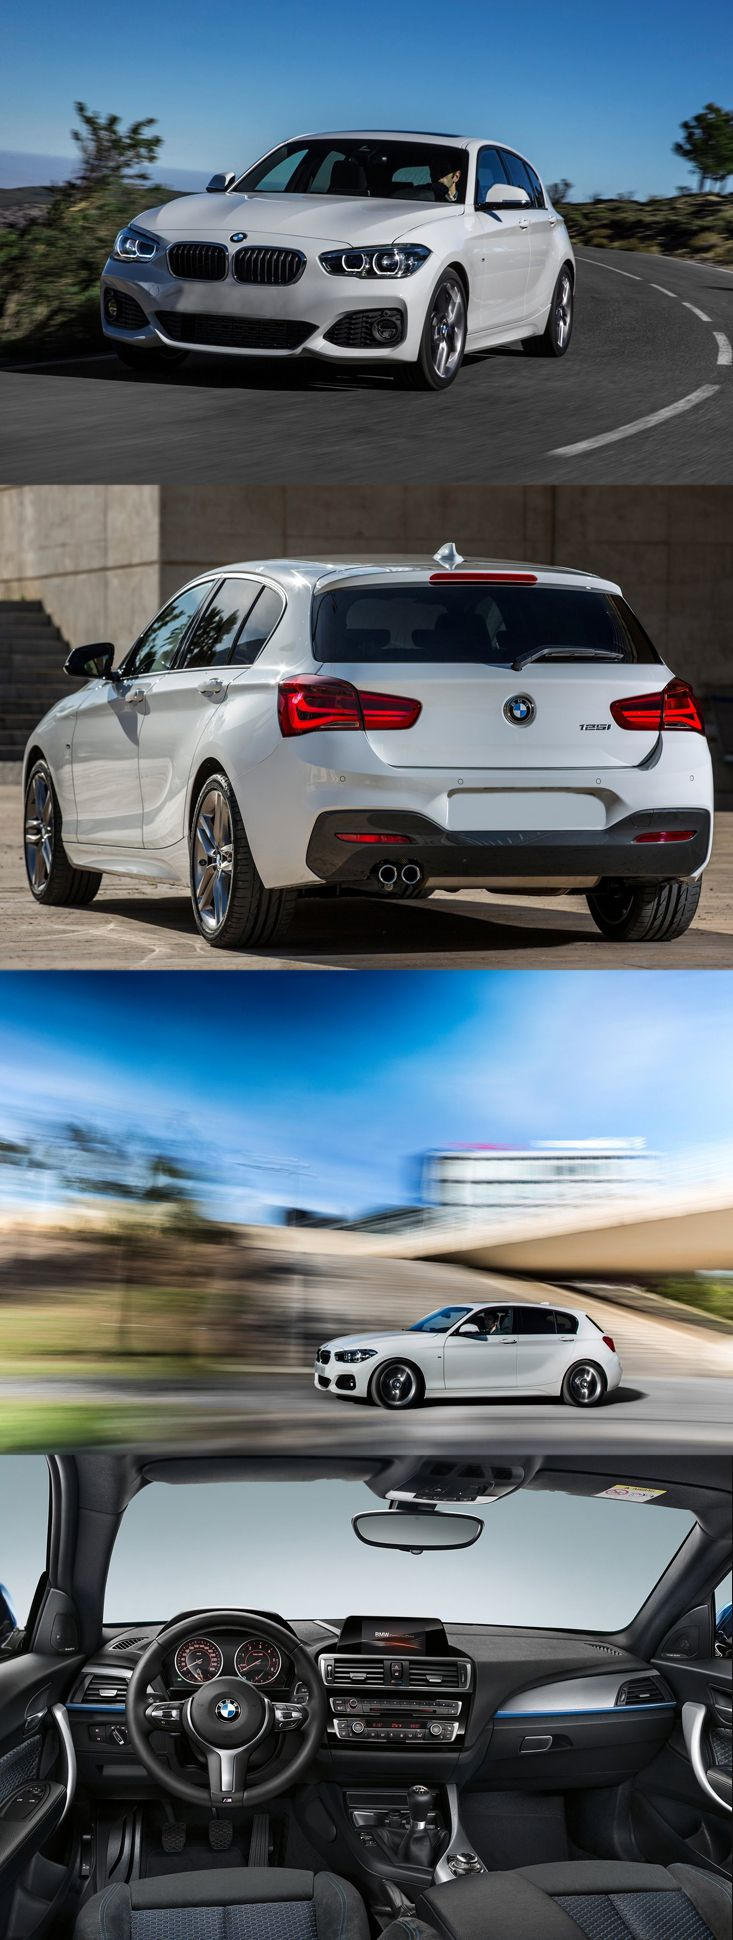 The bmw 1 series a good performer overall for more detail http